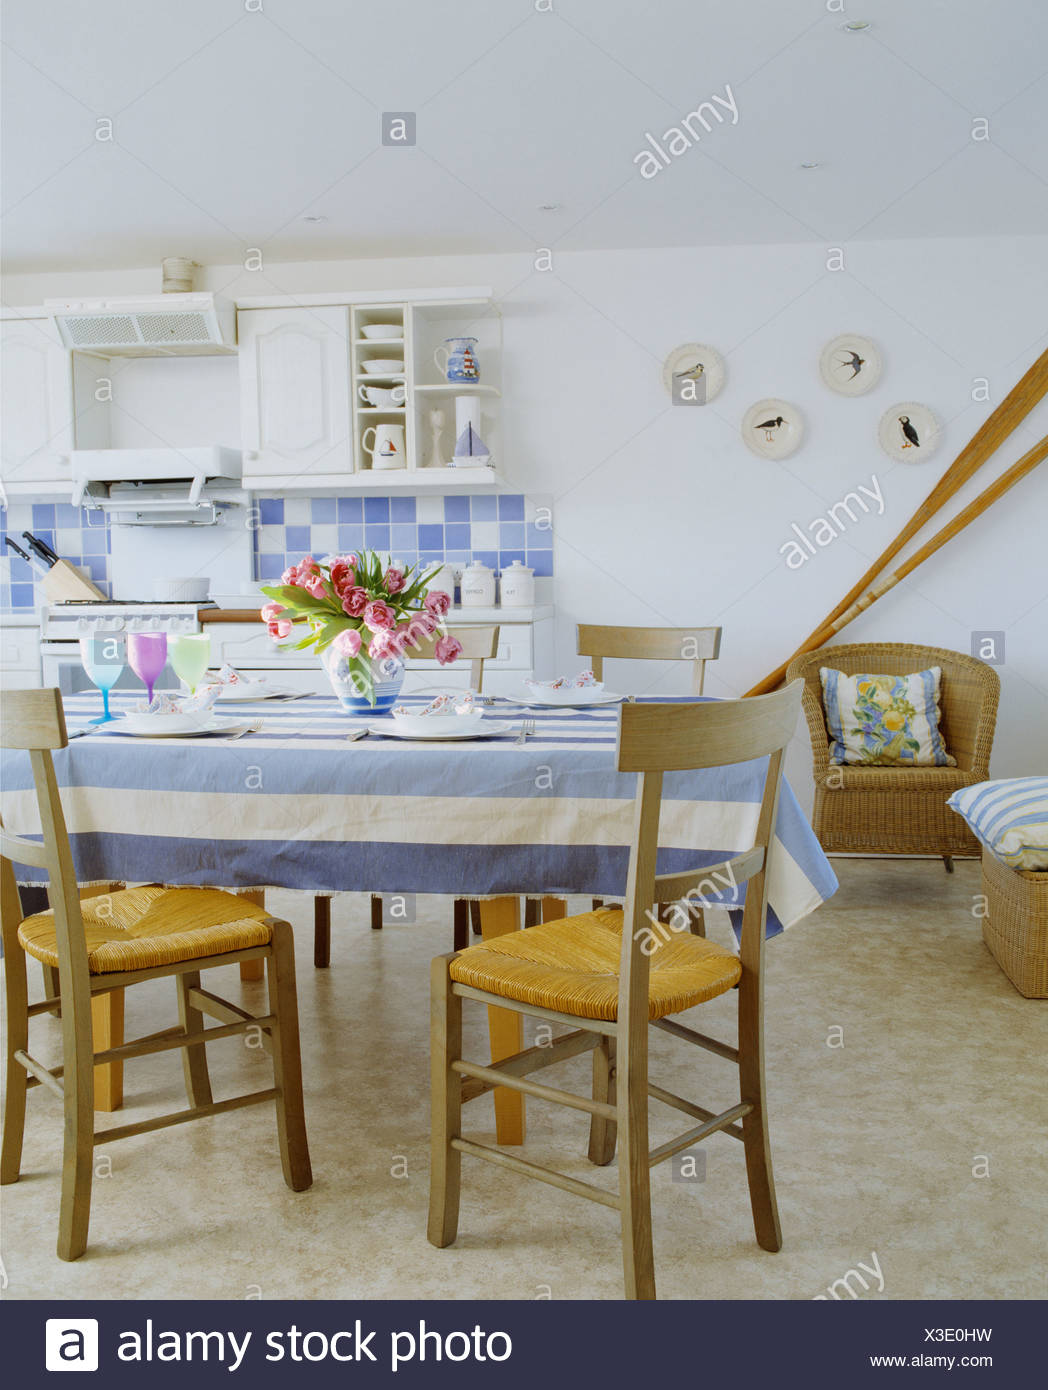 Blue+white striped cloth on table with rush-seated chairs in white on